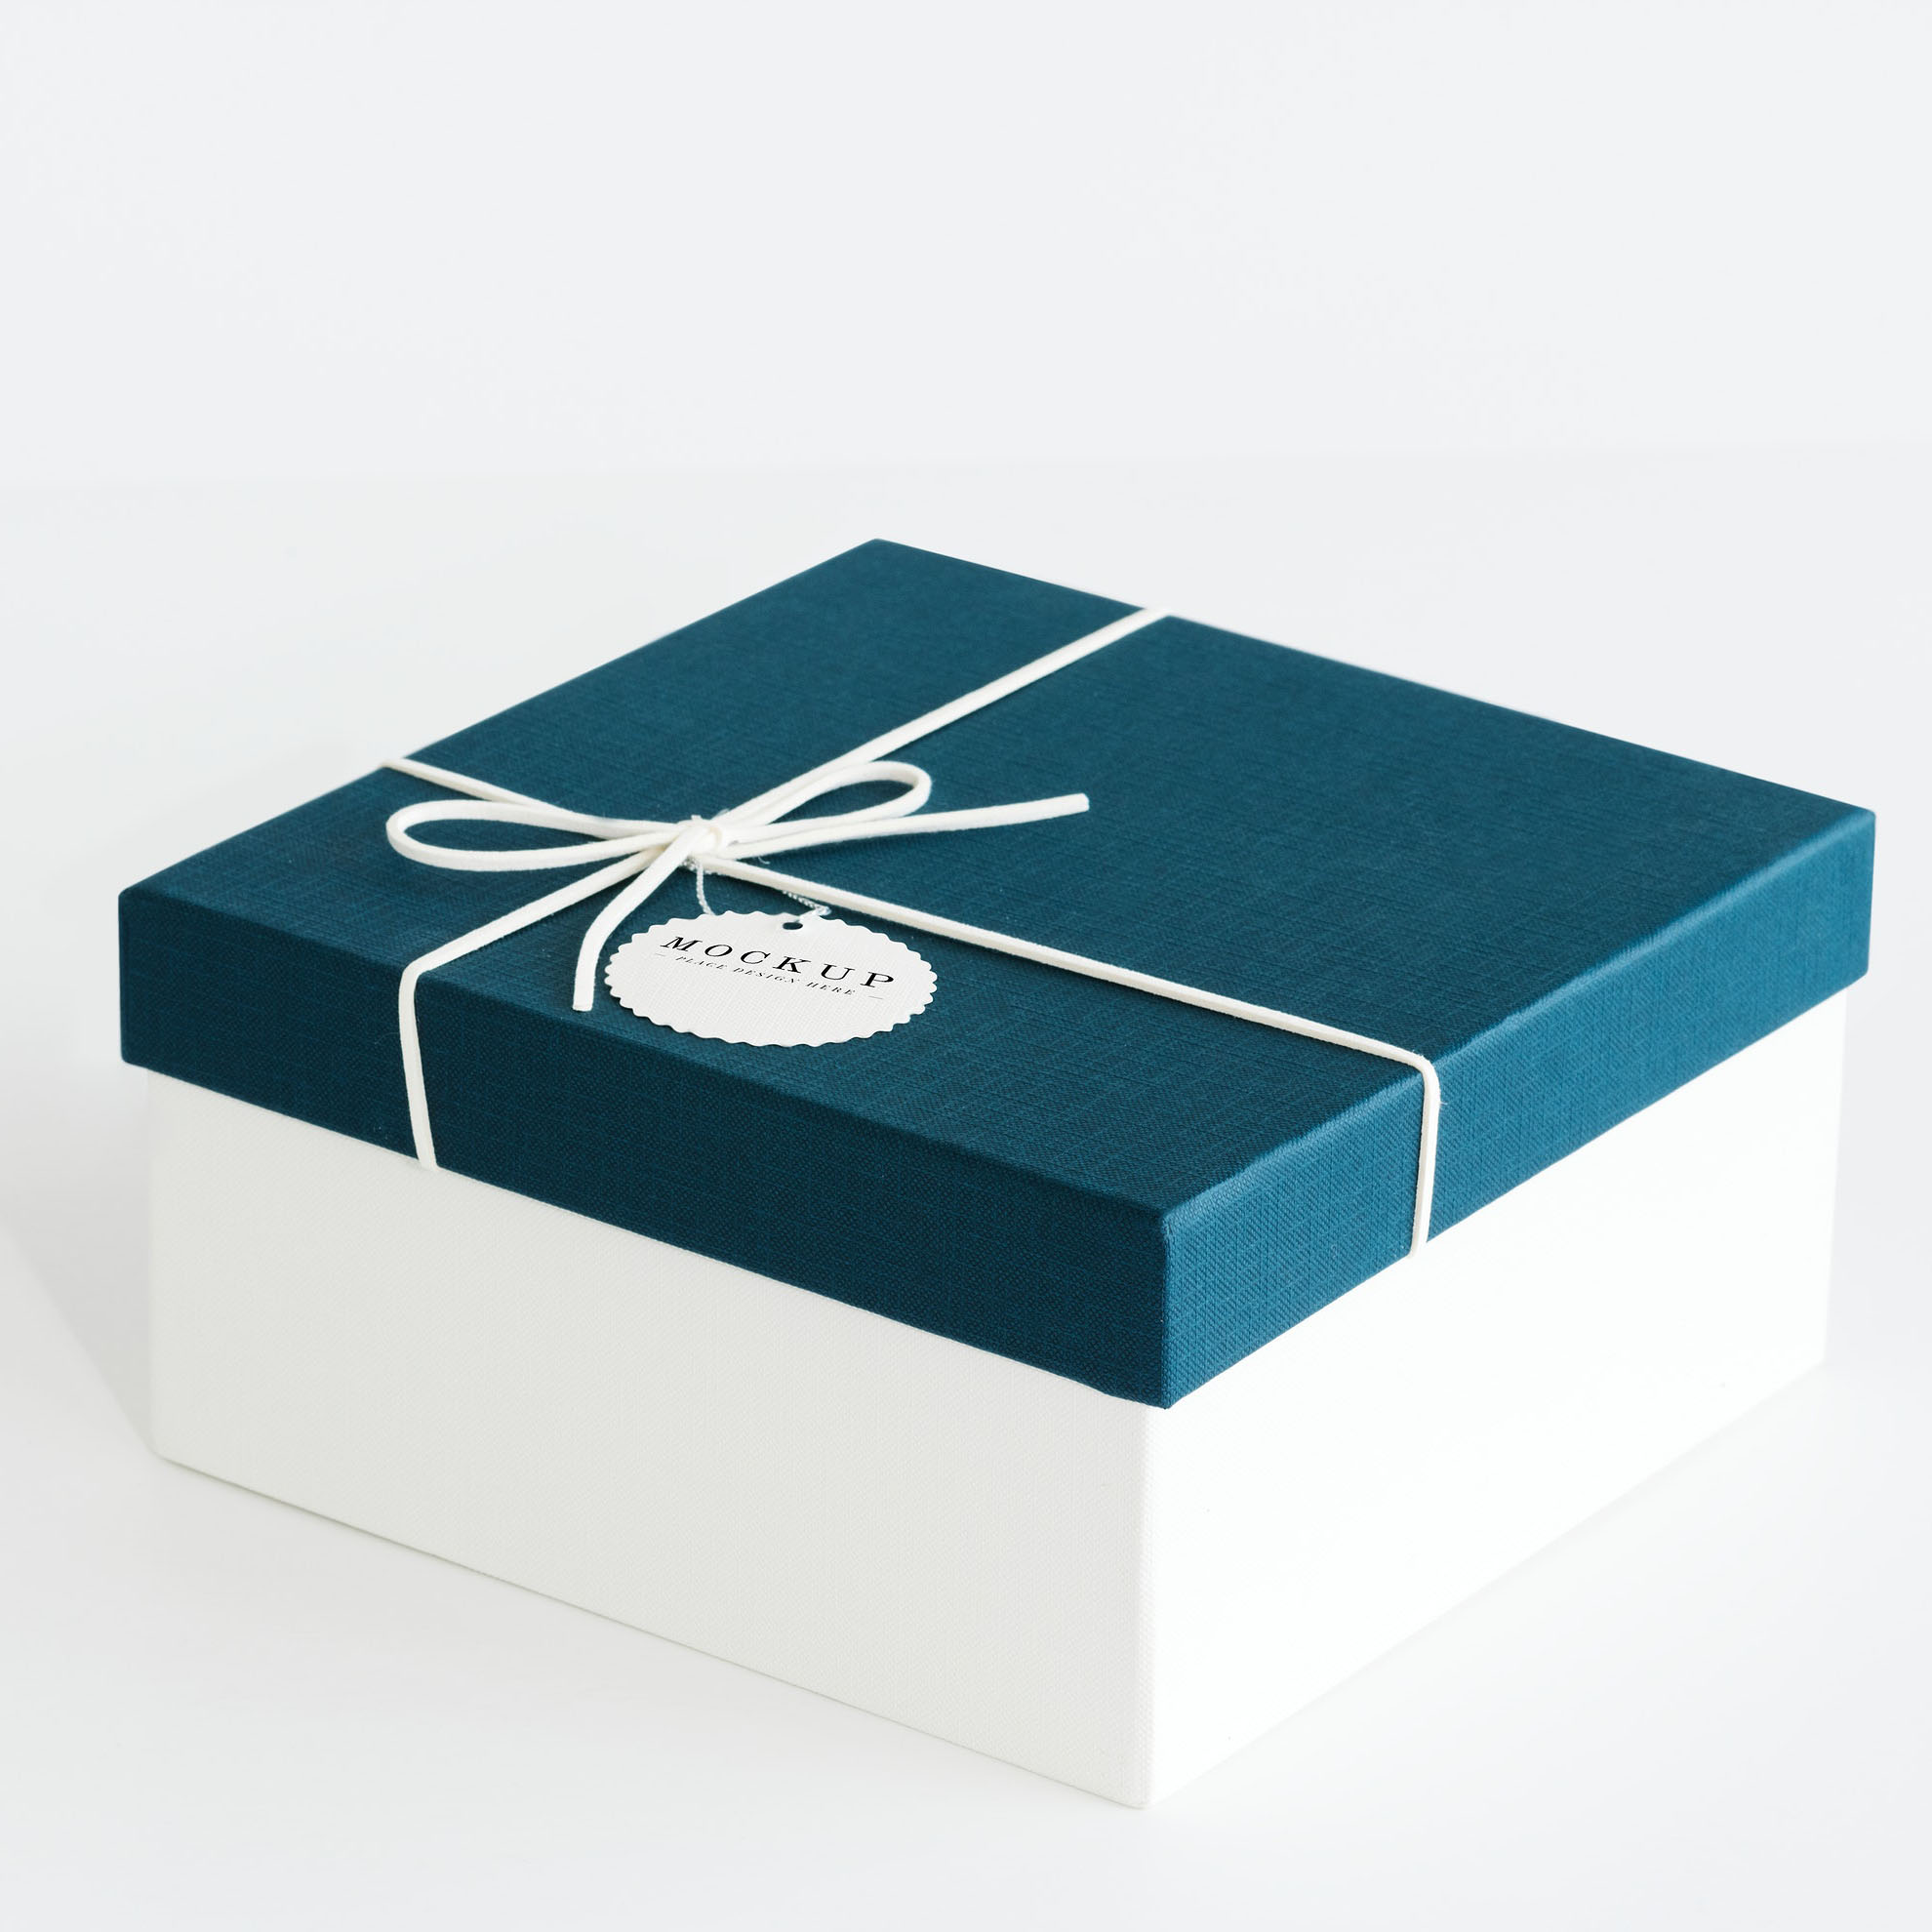 Teal color premium gift box